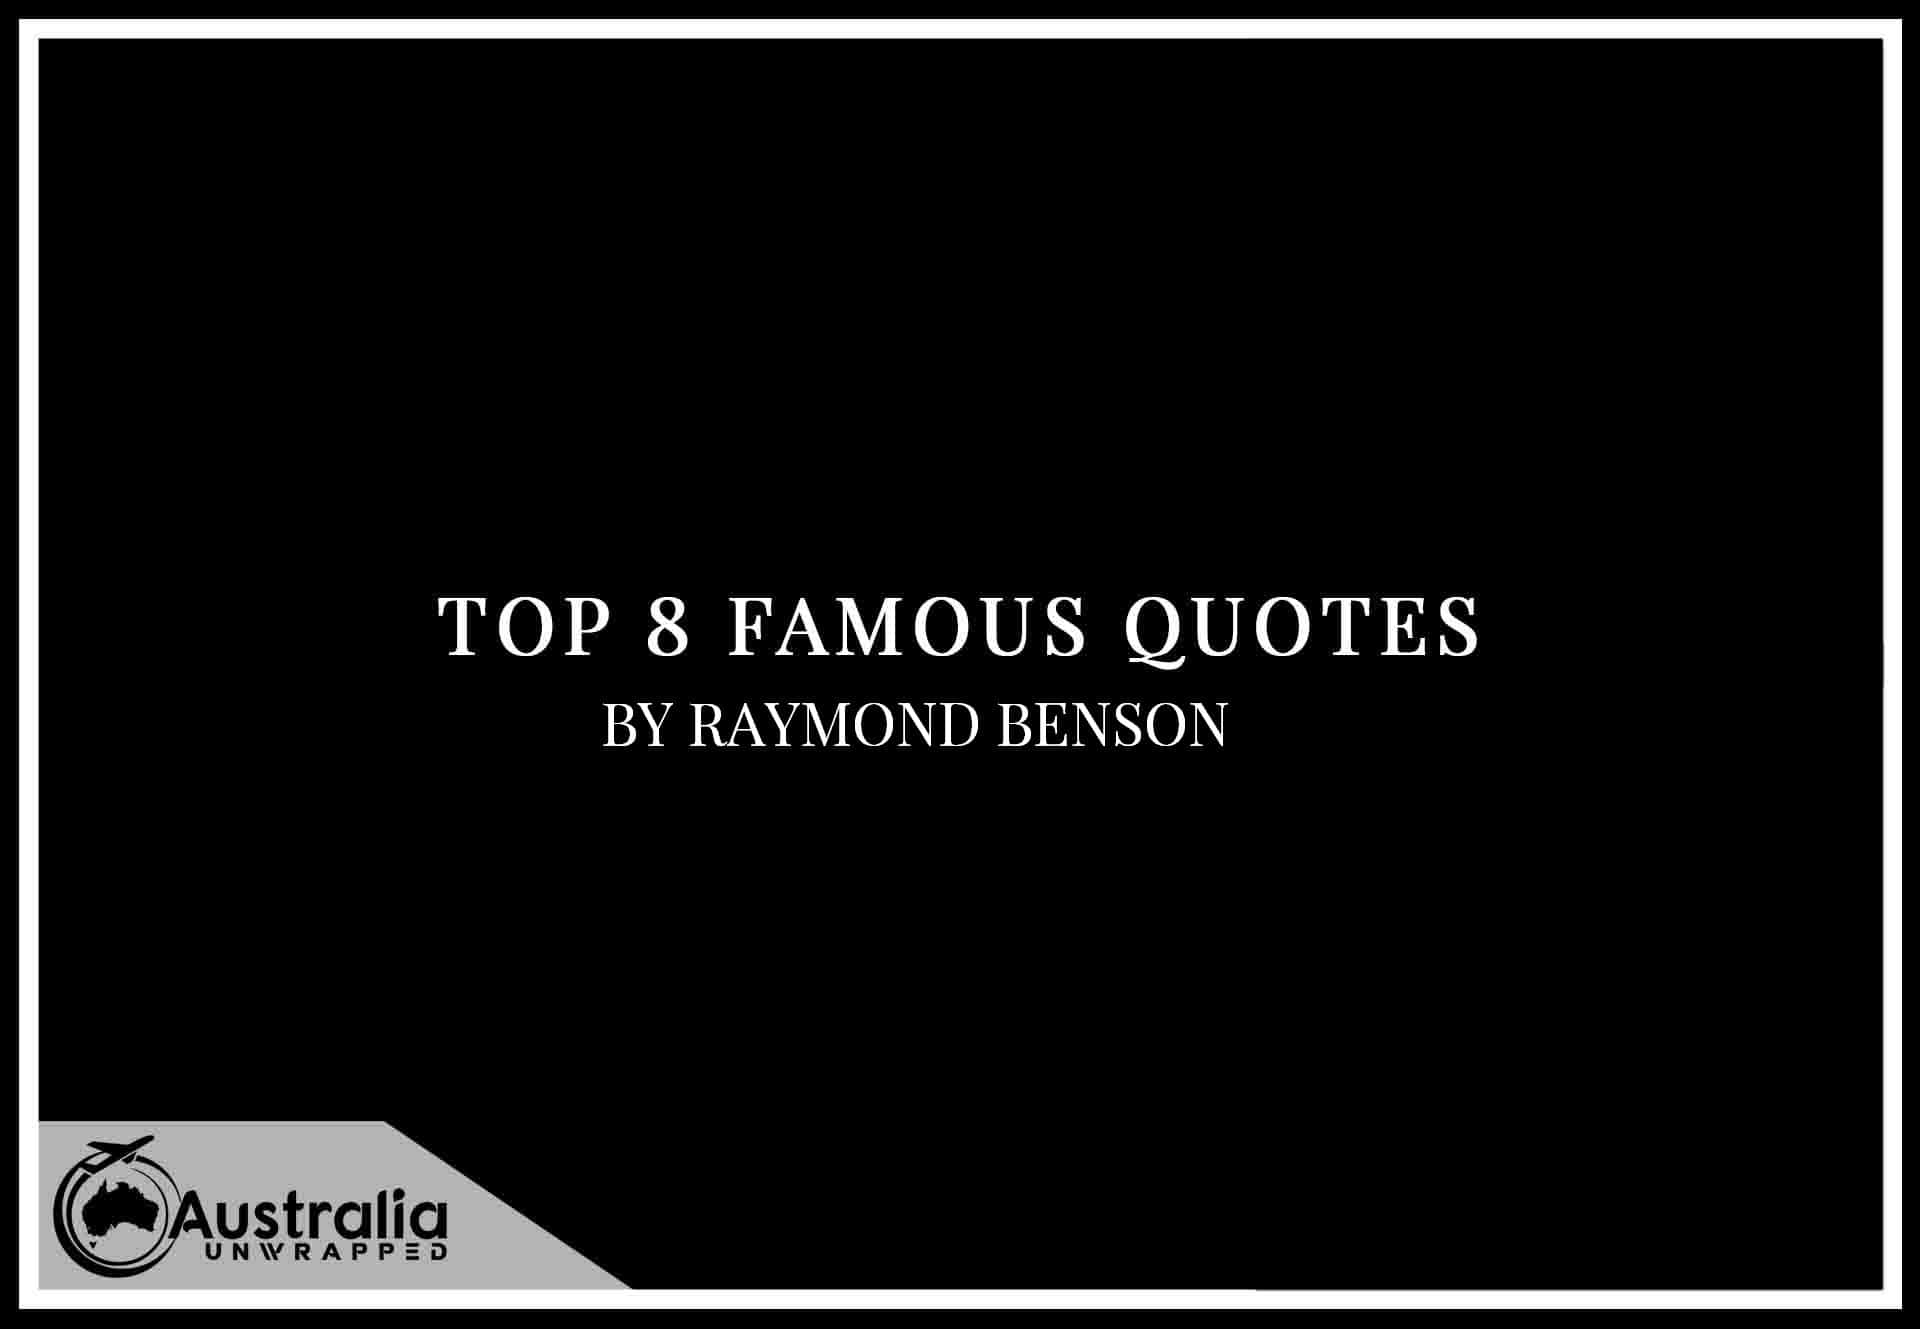 Top 8 Famous Quotes by Author Raymond Benson